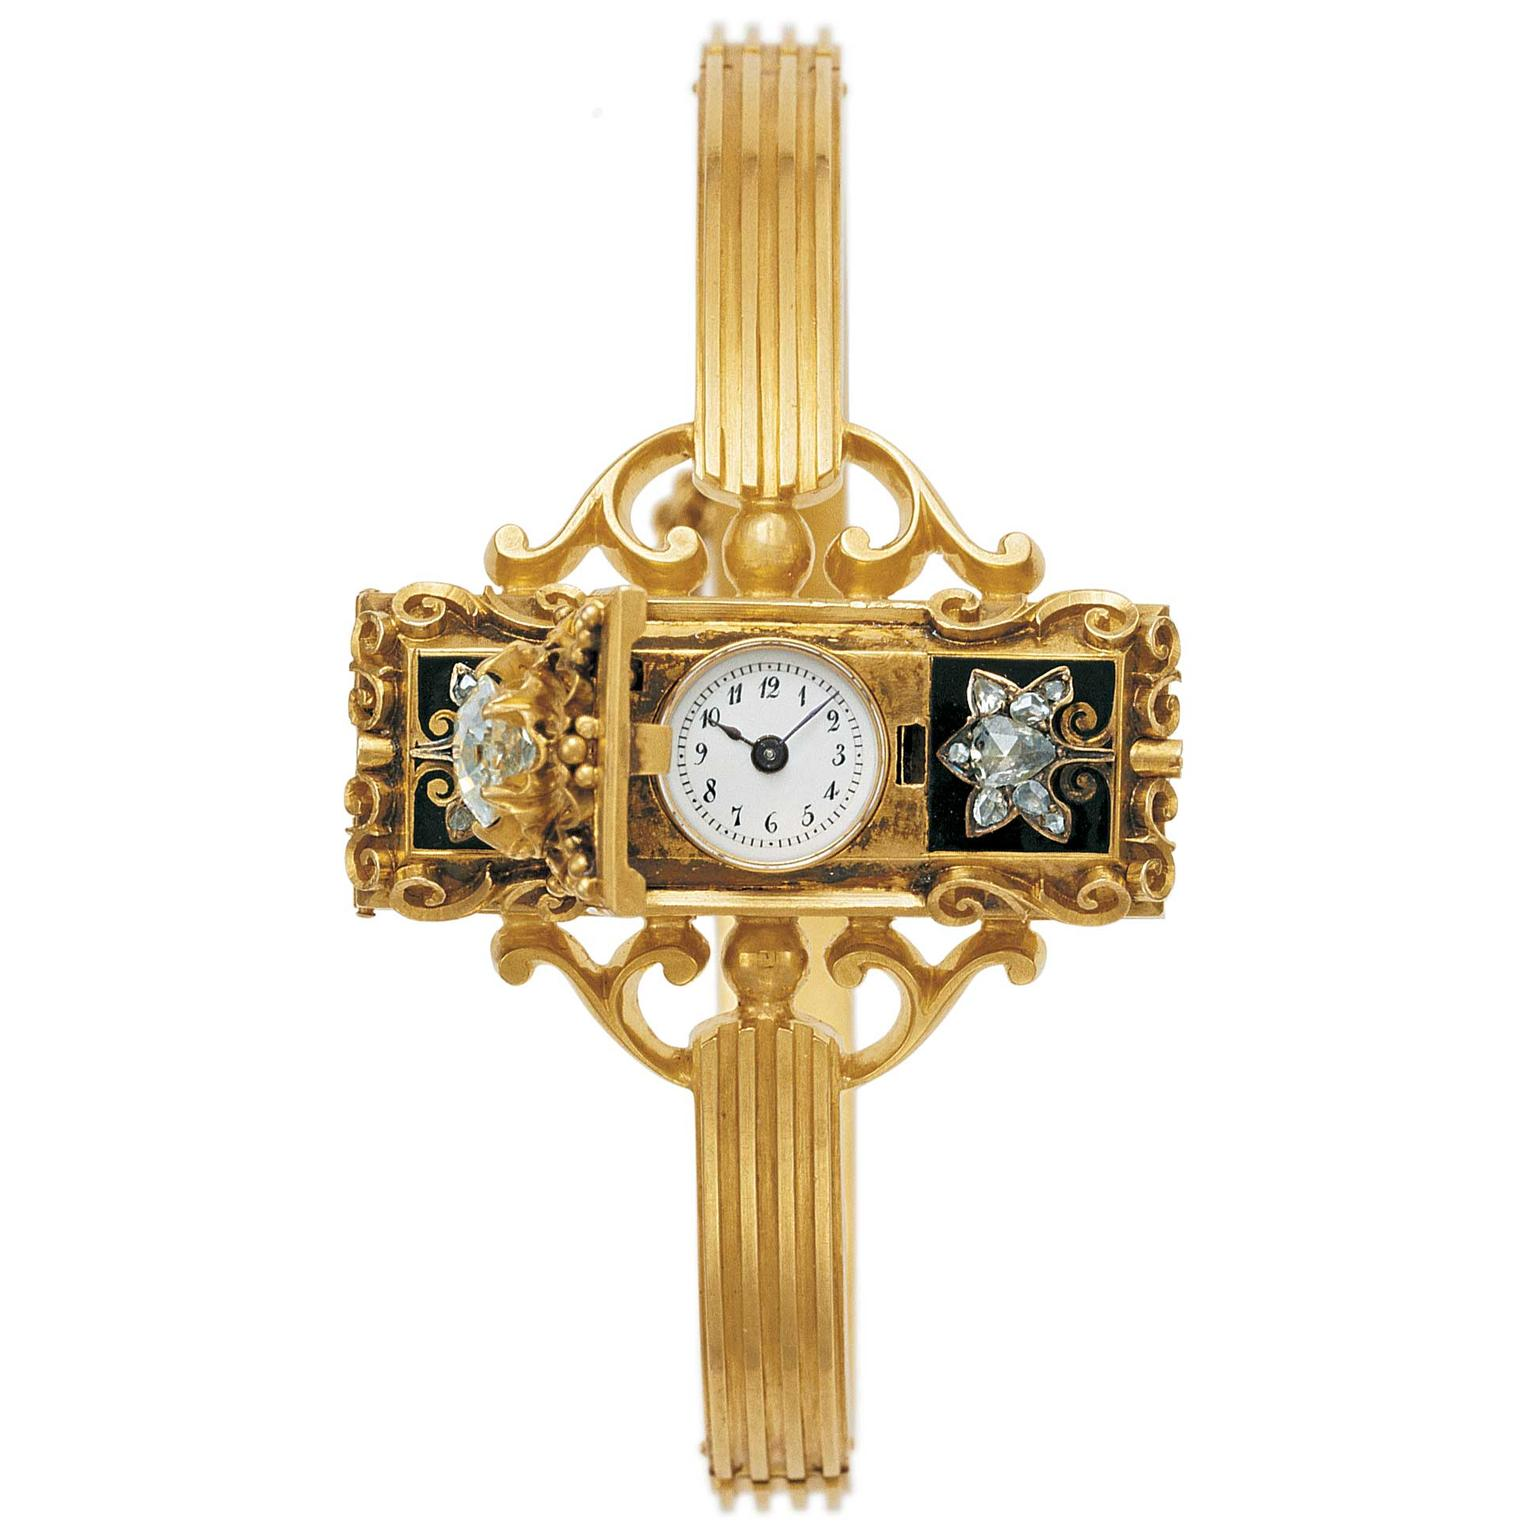 Patek Philippe first women's wristwatch 1868